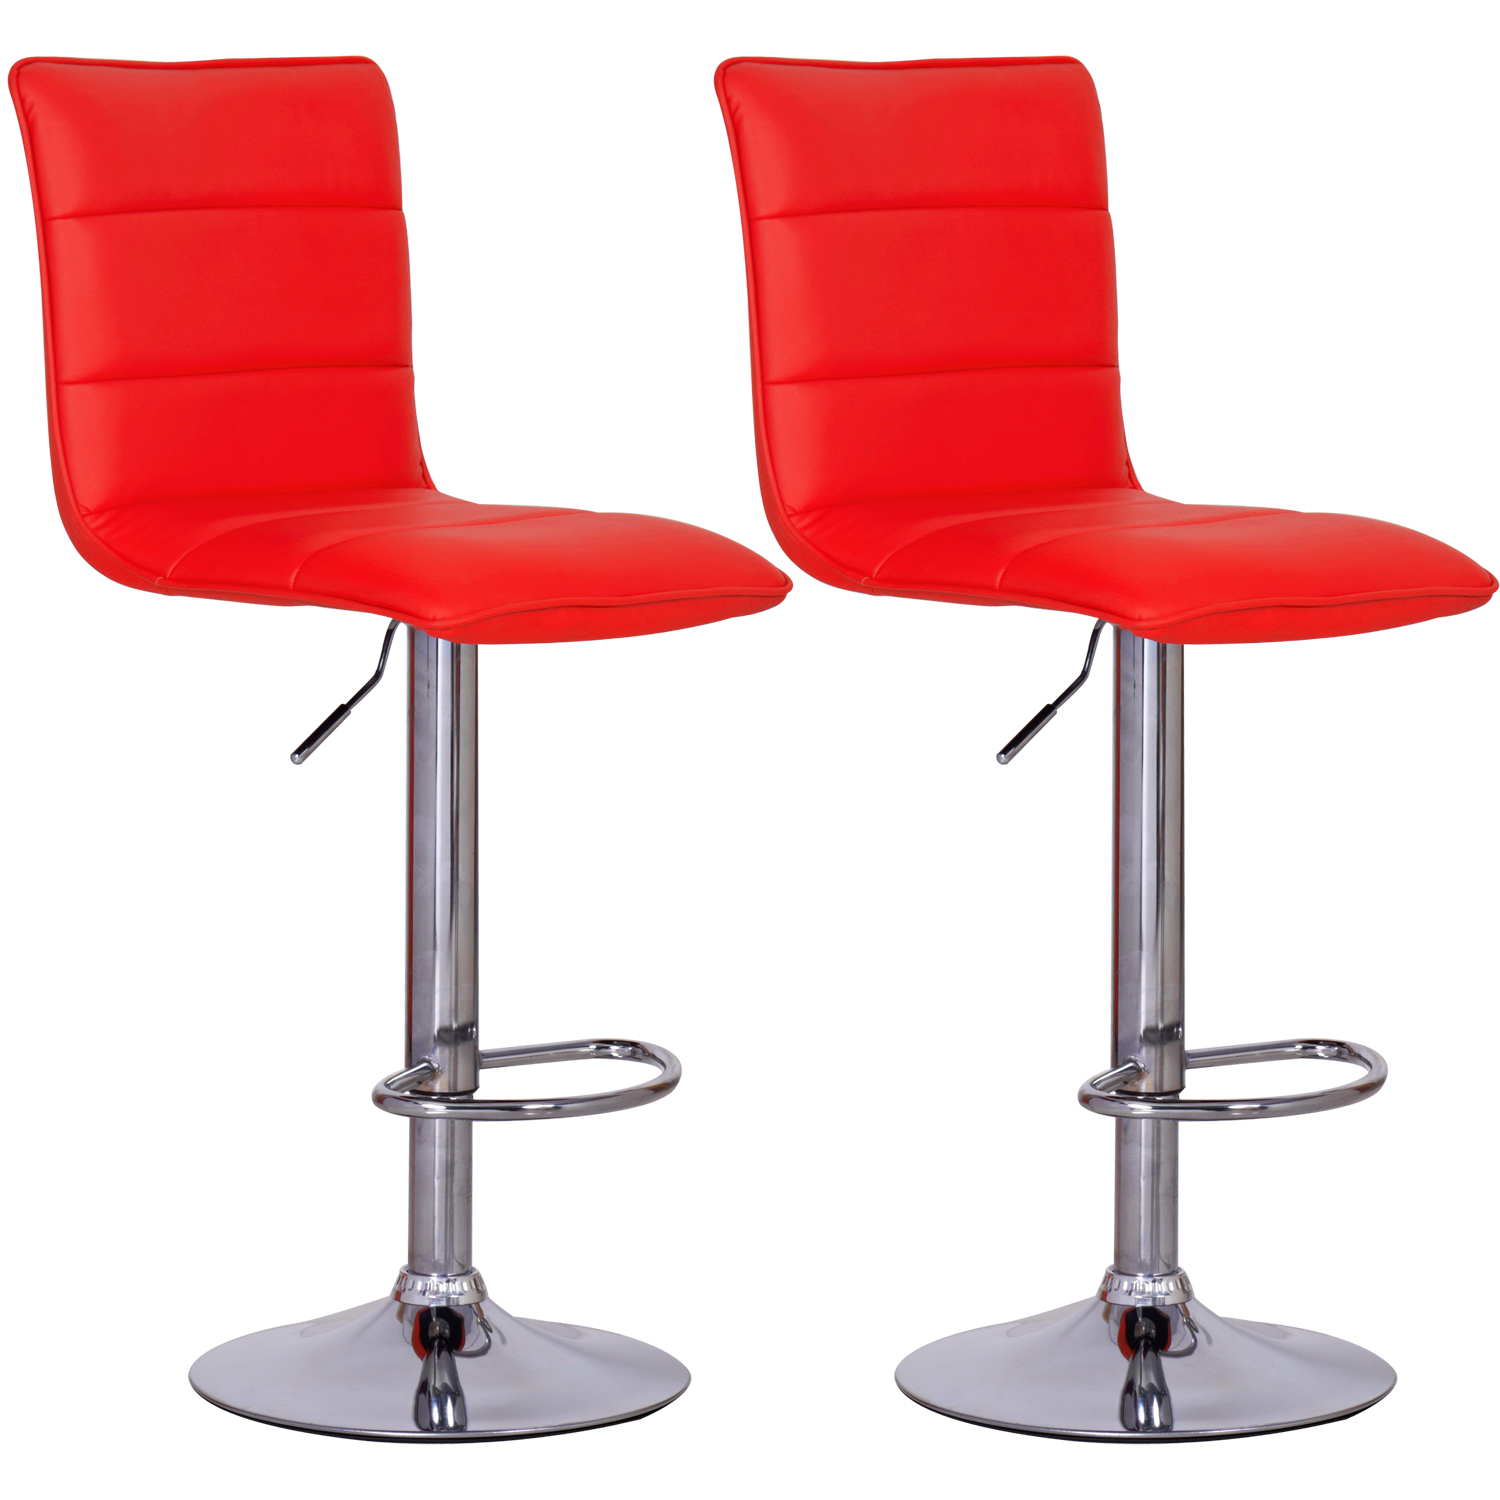 Lot de 2 tabourets de bar r glable en pu pvc chaise - Chaise bar reglable ...